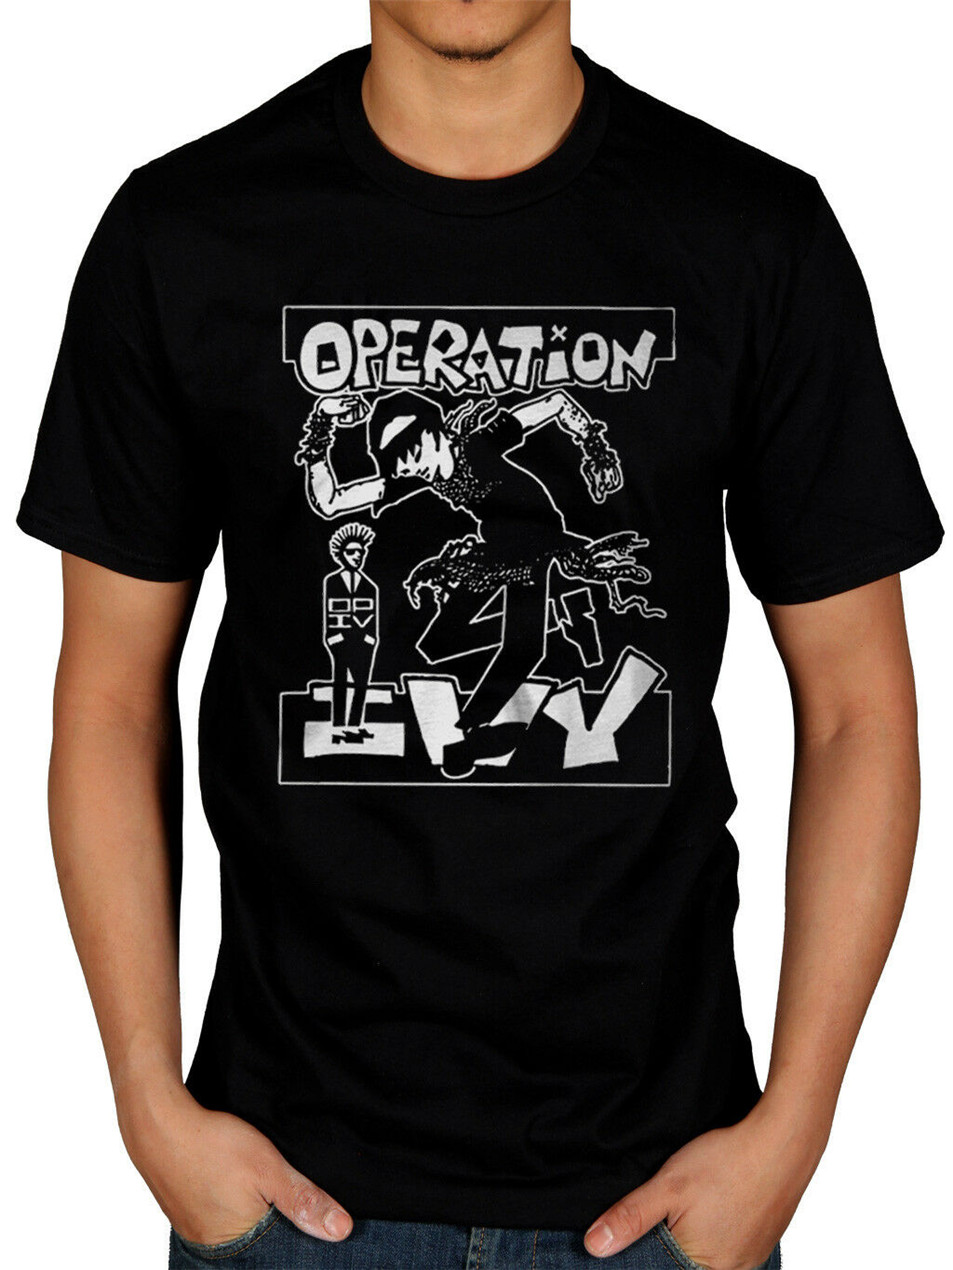 Operation Ivy Skankin T-Shirt Lint Rides Again Seedy Hectic King 2Xl 3Xl 4Xl 26Xl Tee Shirt